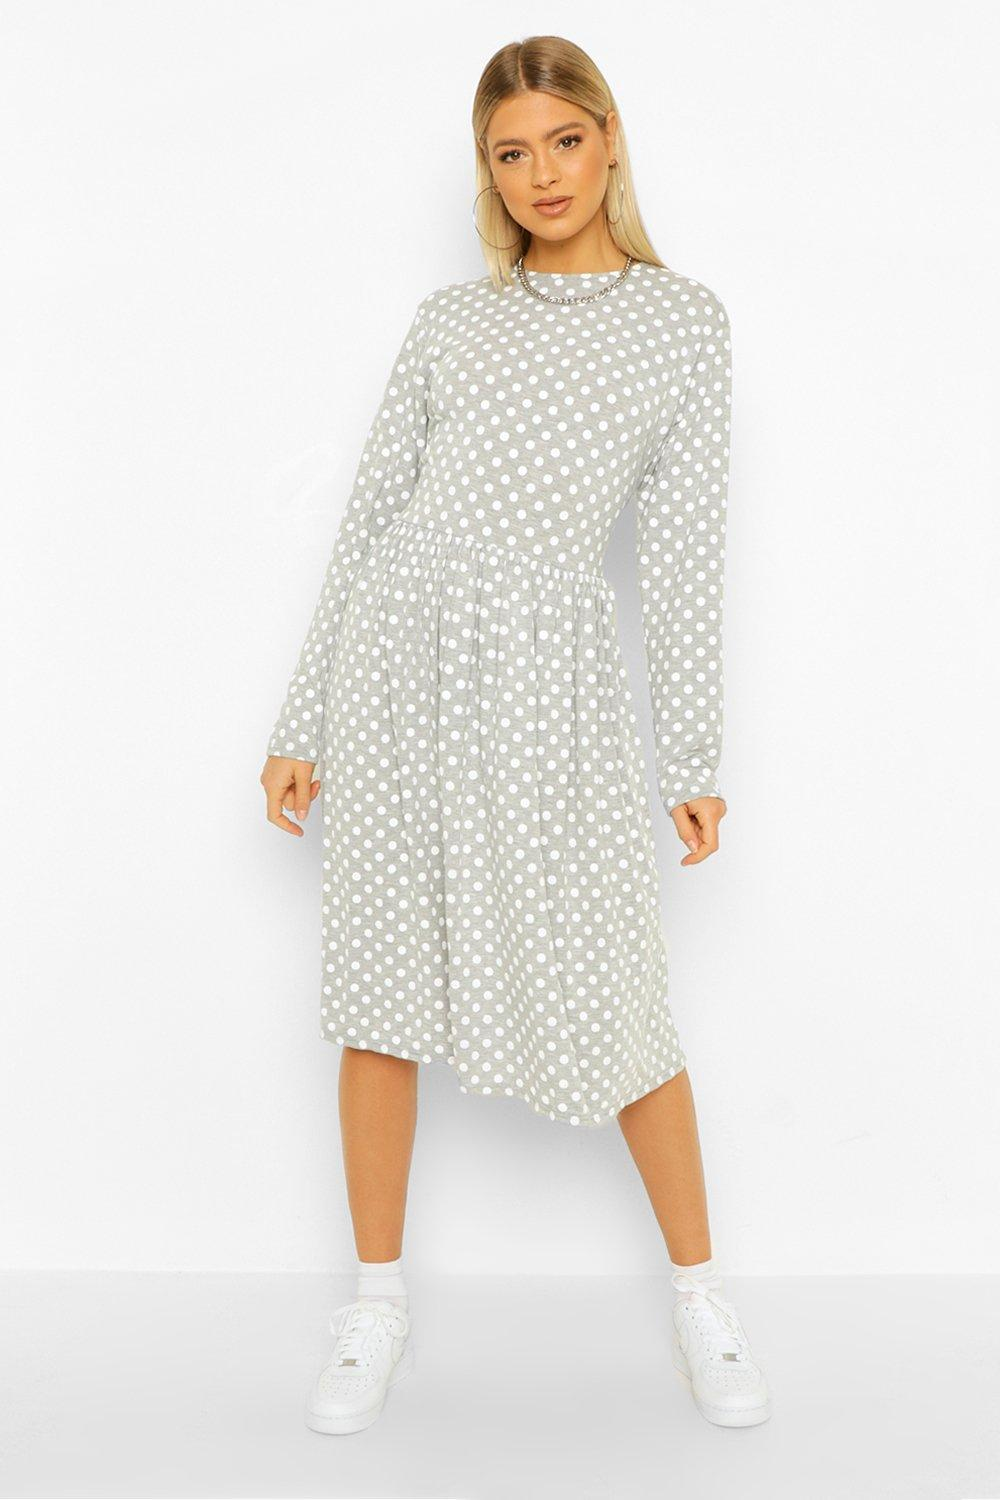 Cottagecore Clothing, Soft Aesthetic Womens Tall Polka Dot Long Sleeve Smock Midi Dress - Grey - 14 $15.20 AT vintagedancer.com